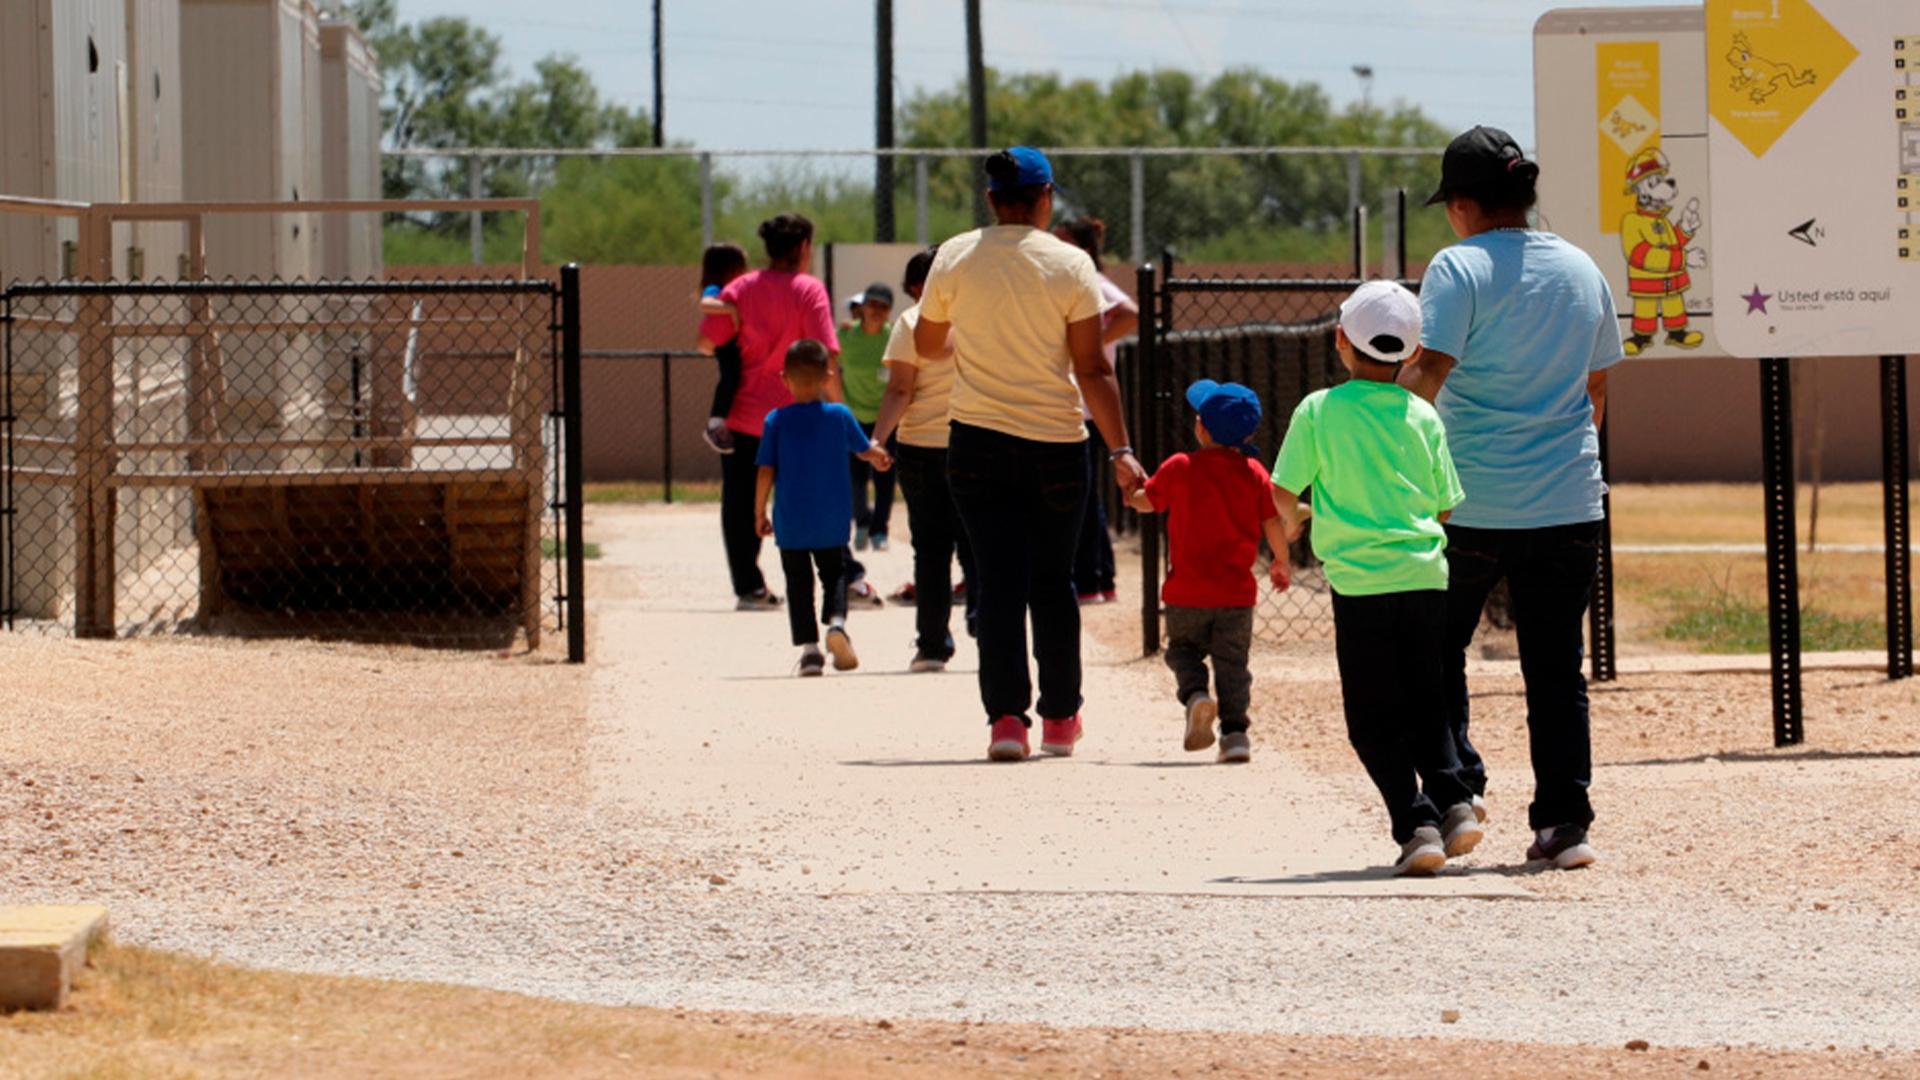 Judge orders ICE to release migrant children held with their families, citing coronavirus…